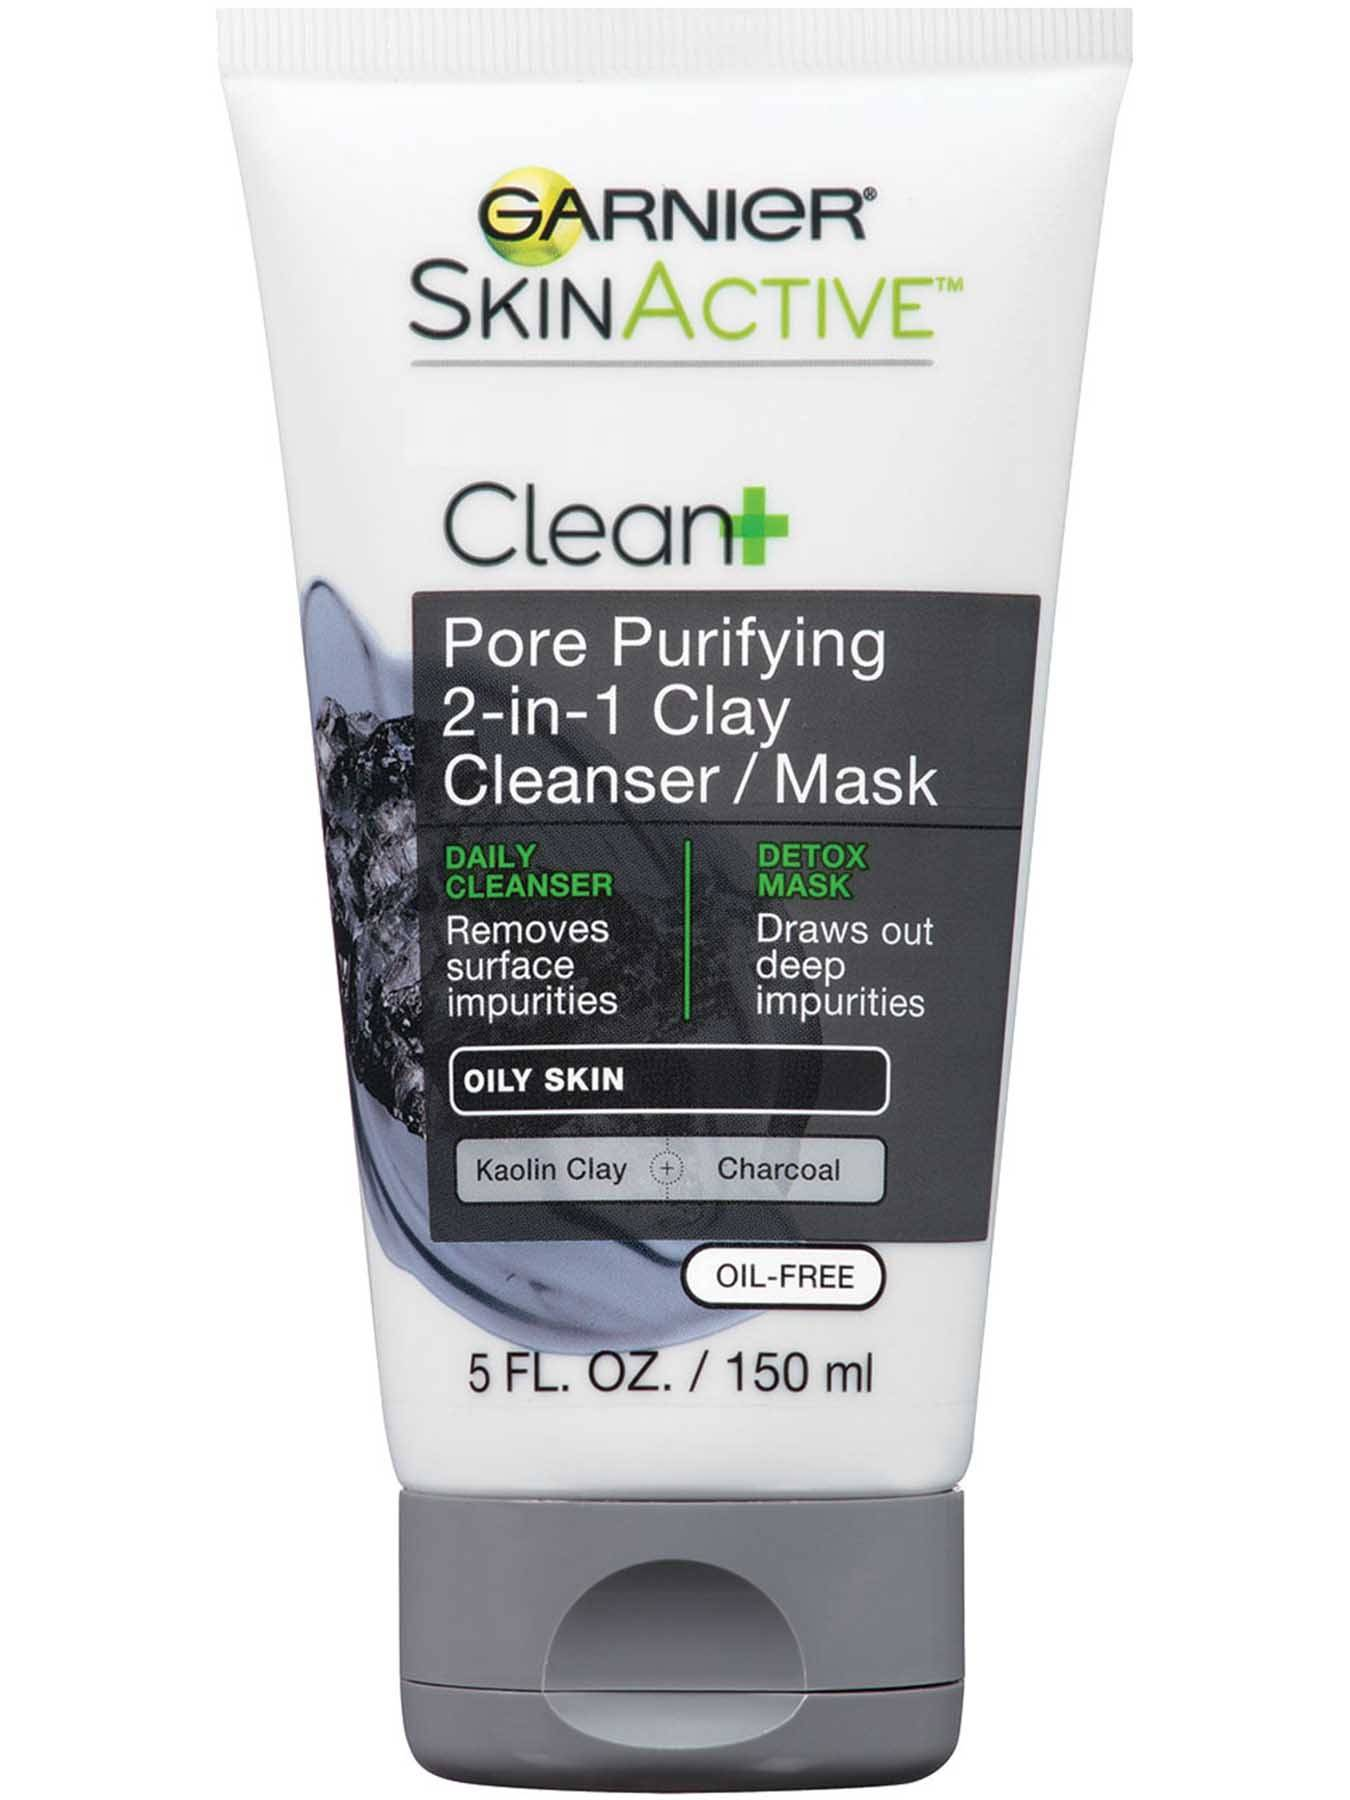 Front view of Clean+ Pore Purifying 2-in-1 Clay Cleanser/Mask, Oily Skin, Oil-Free.